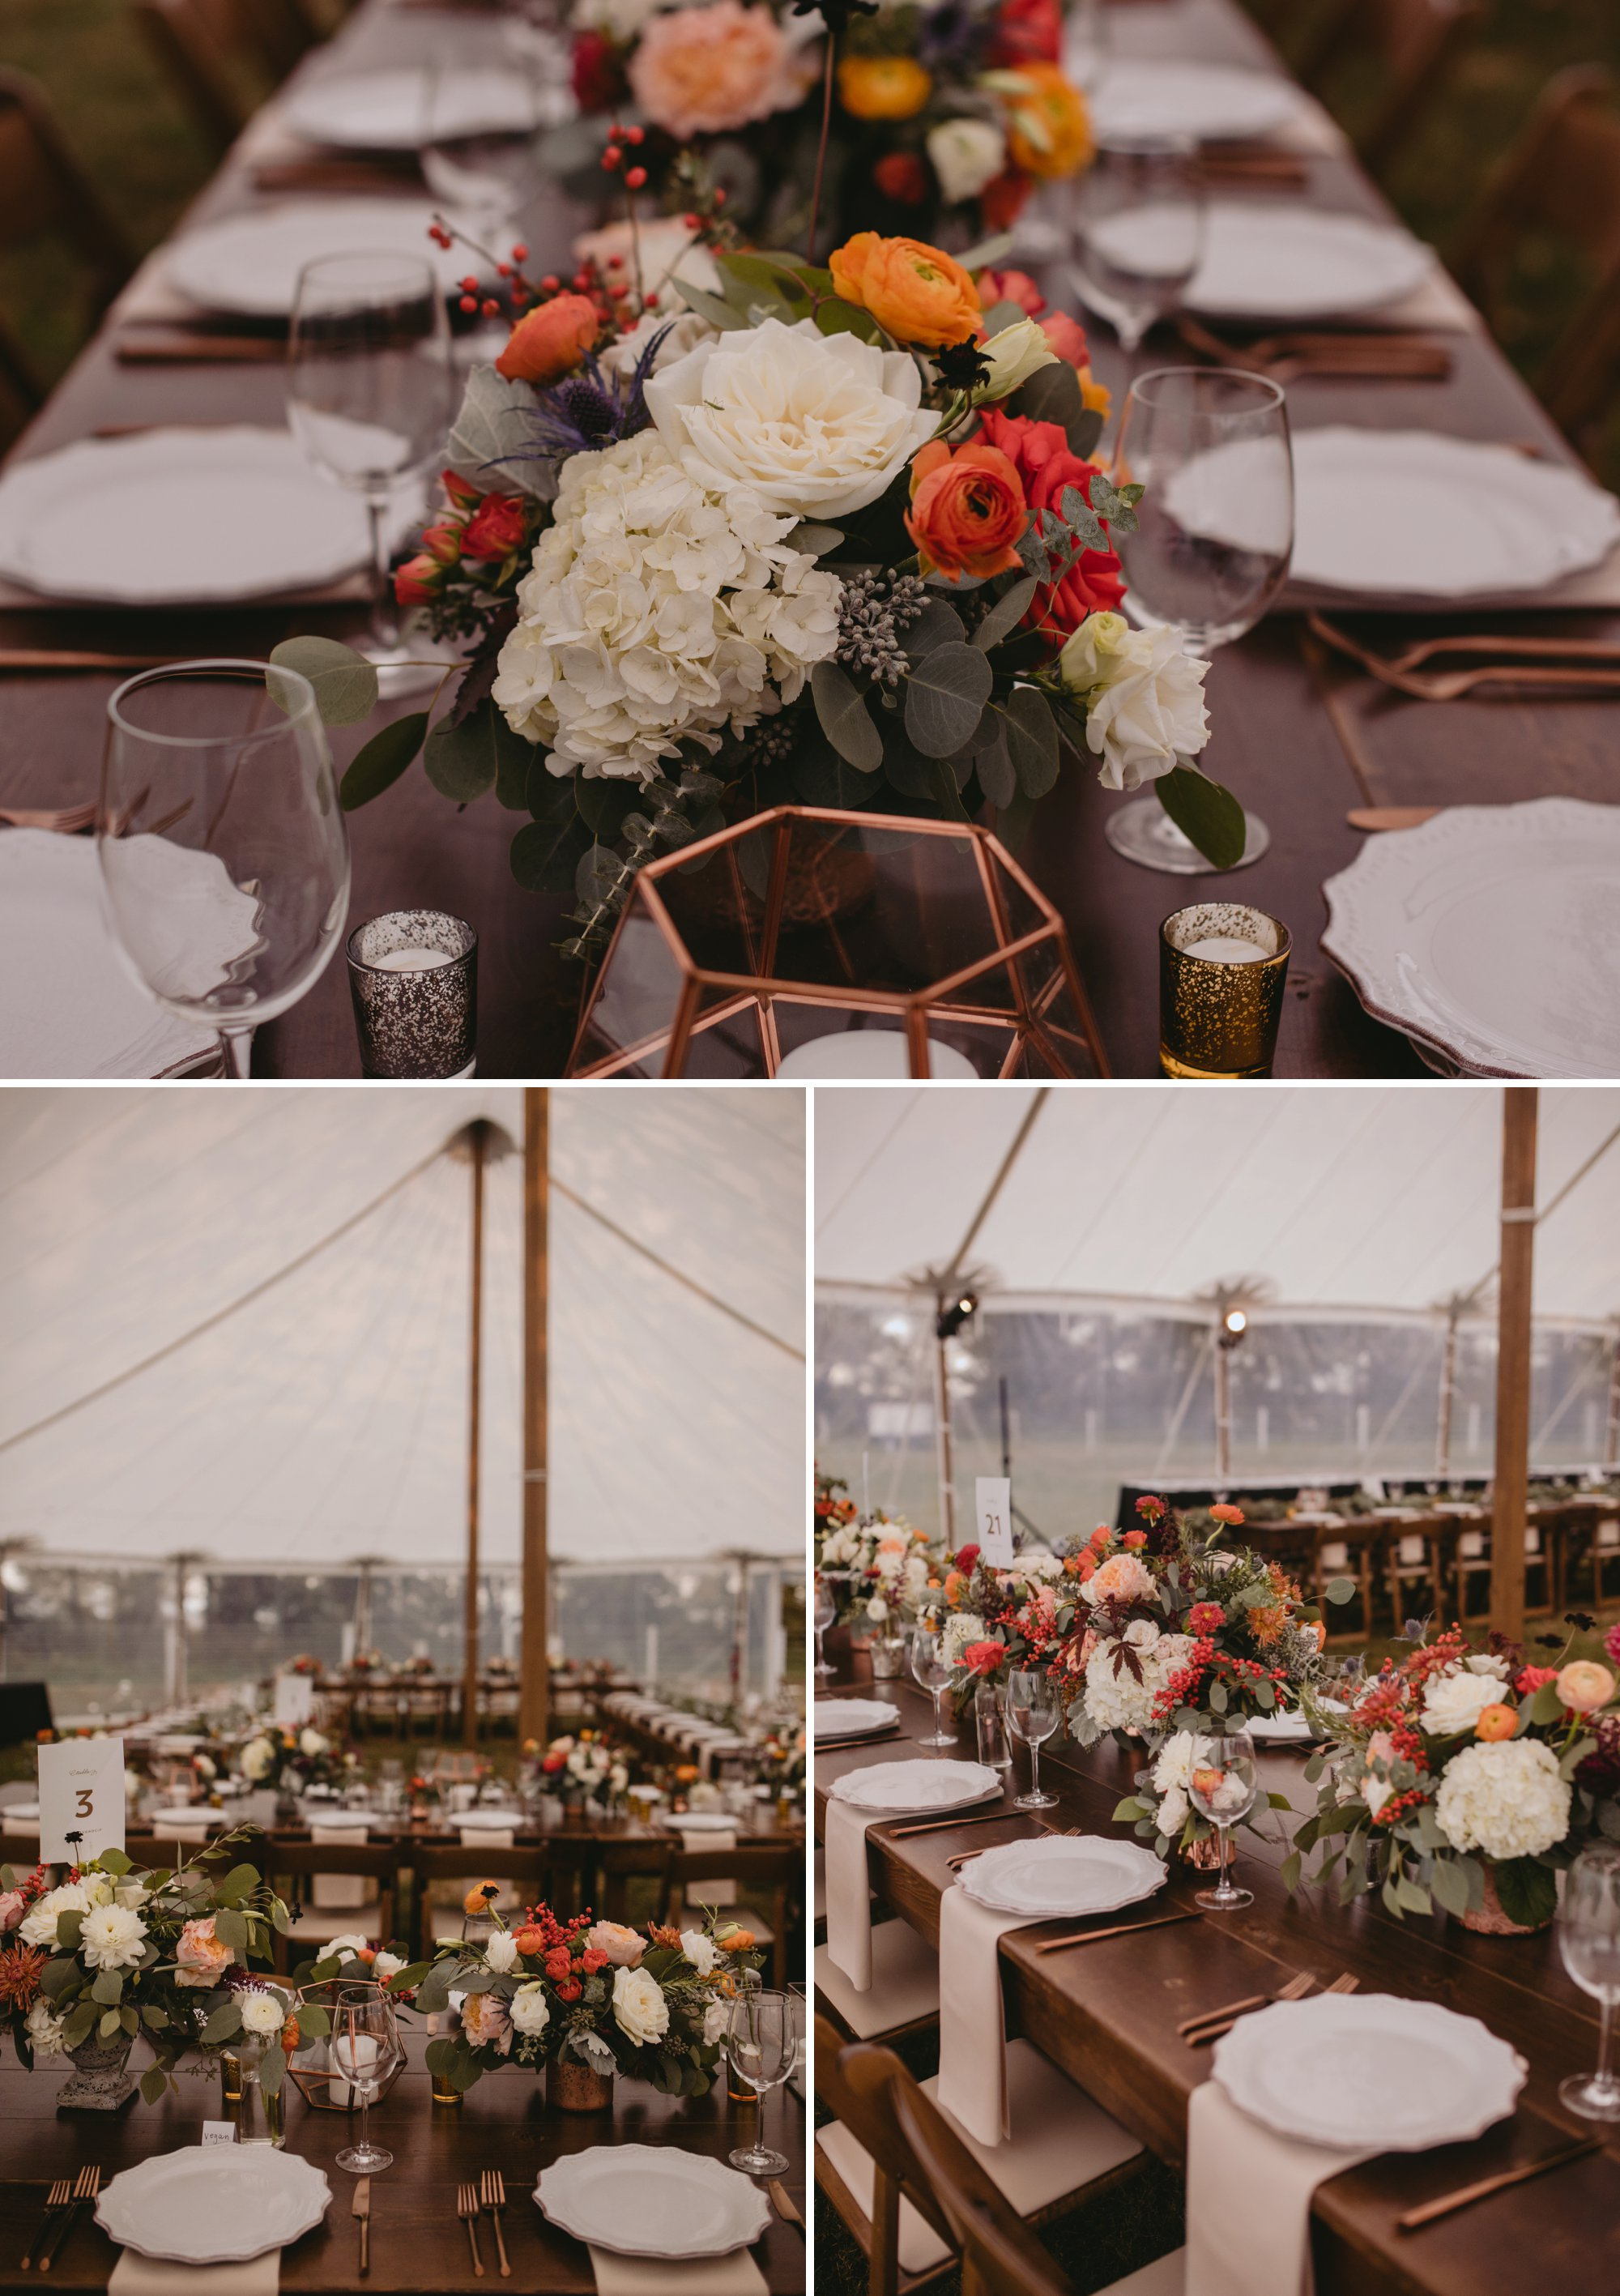 Autumn Richmond VA winery wedding at Upper Shirley Vineyards with lush garden florals and old Hollywood glamour table settings